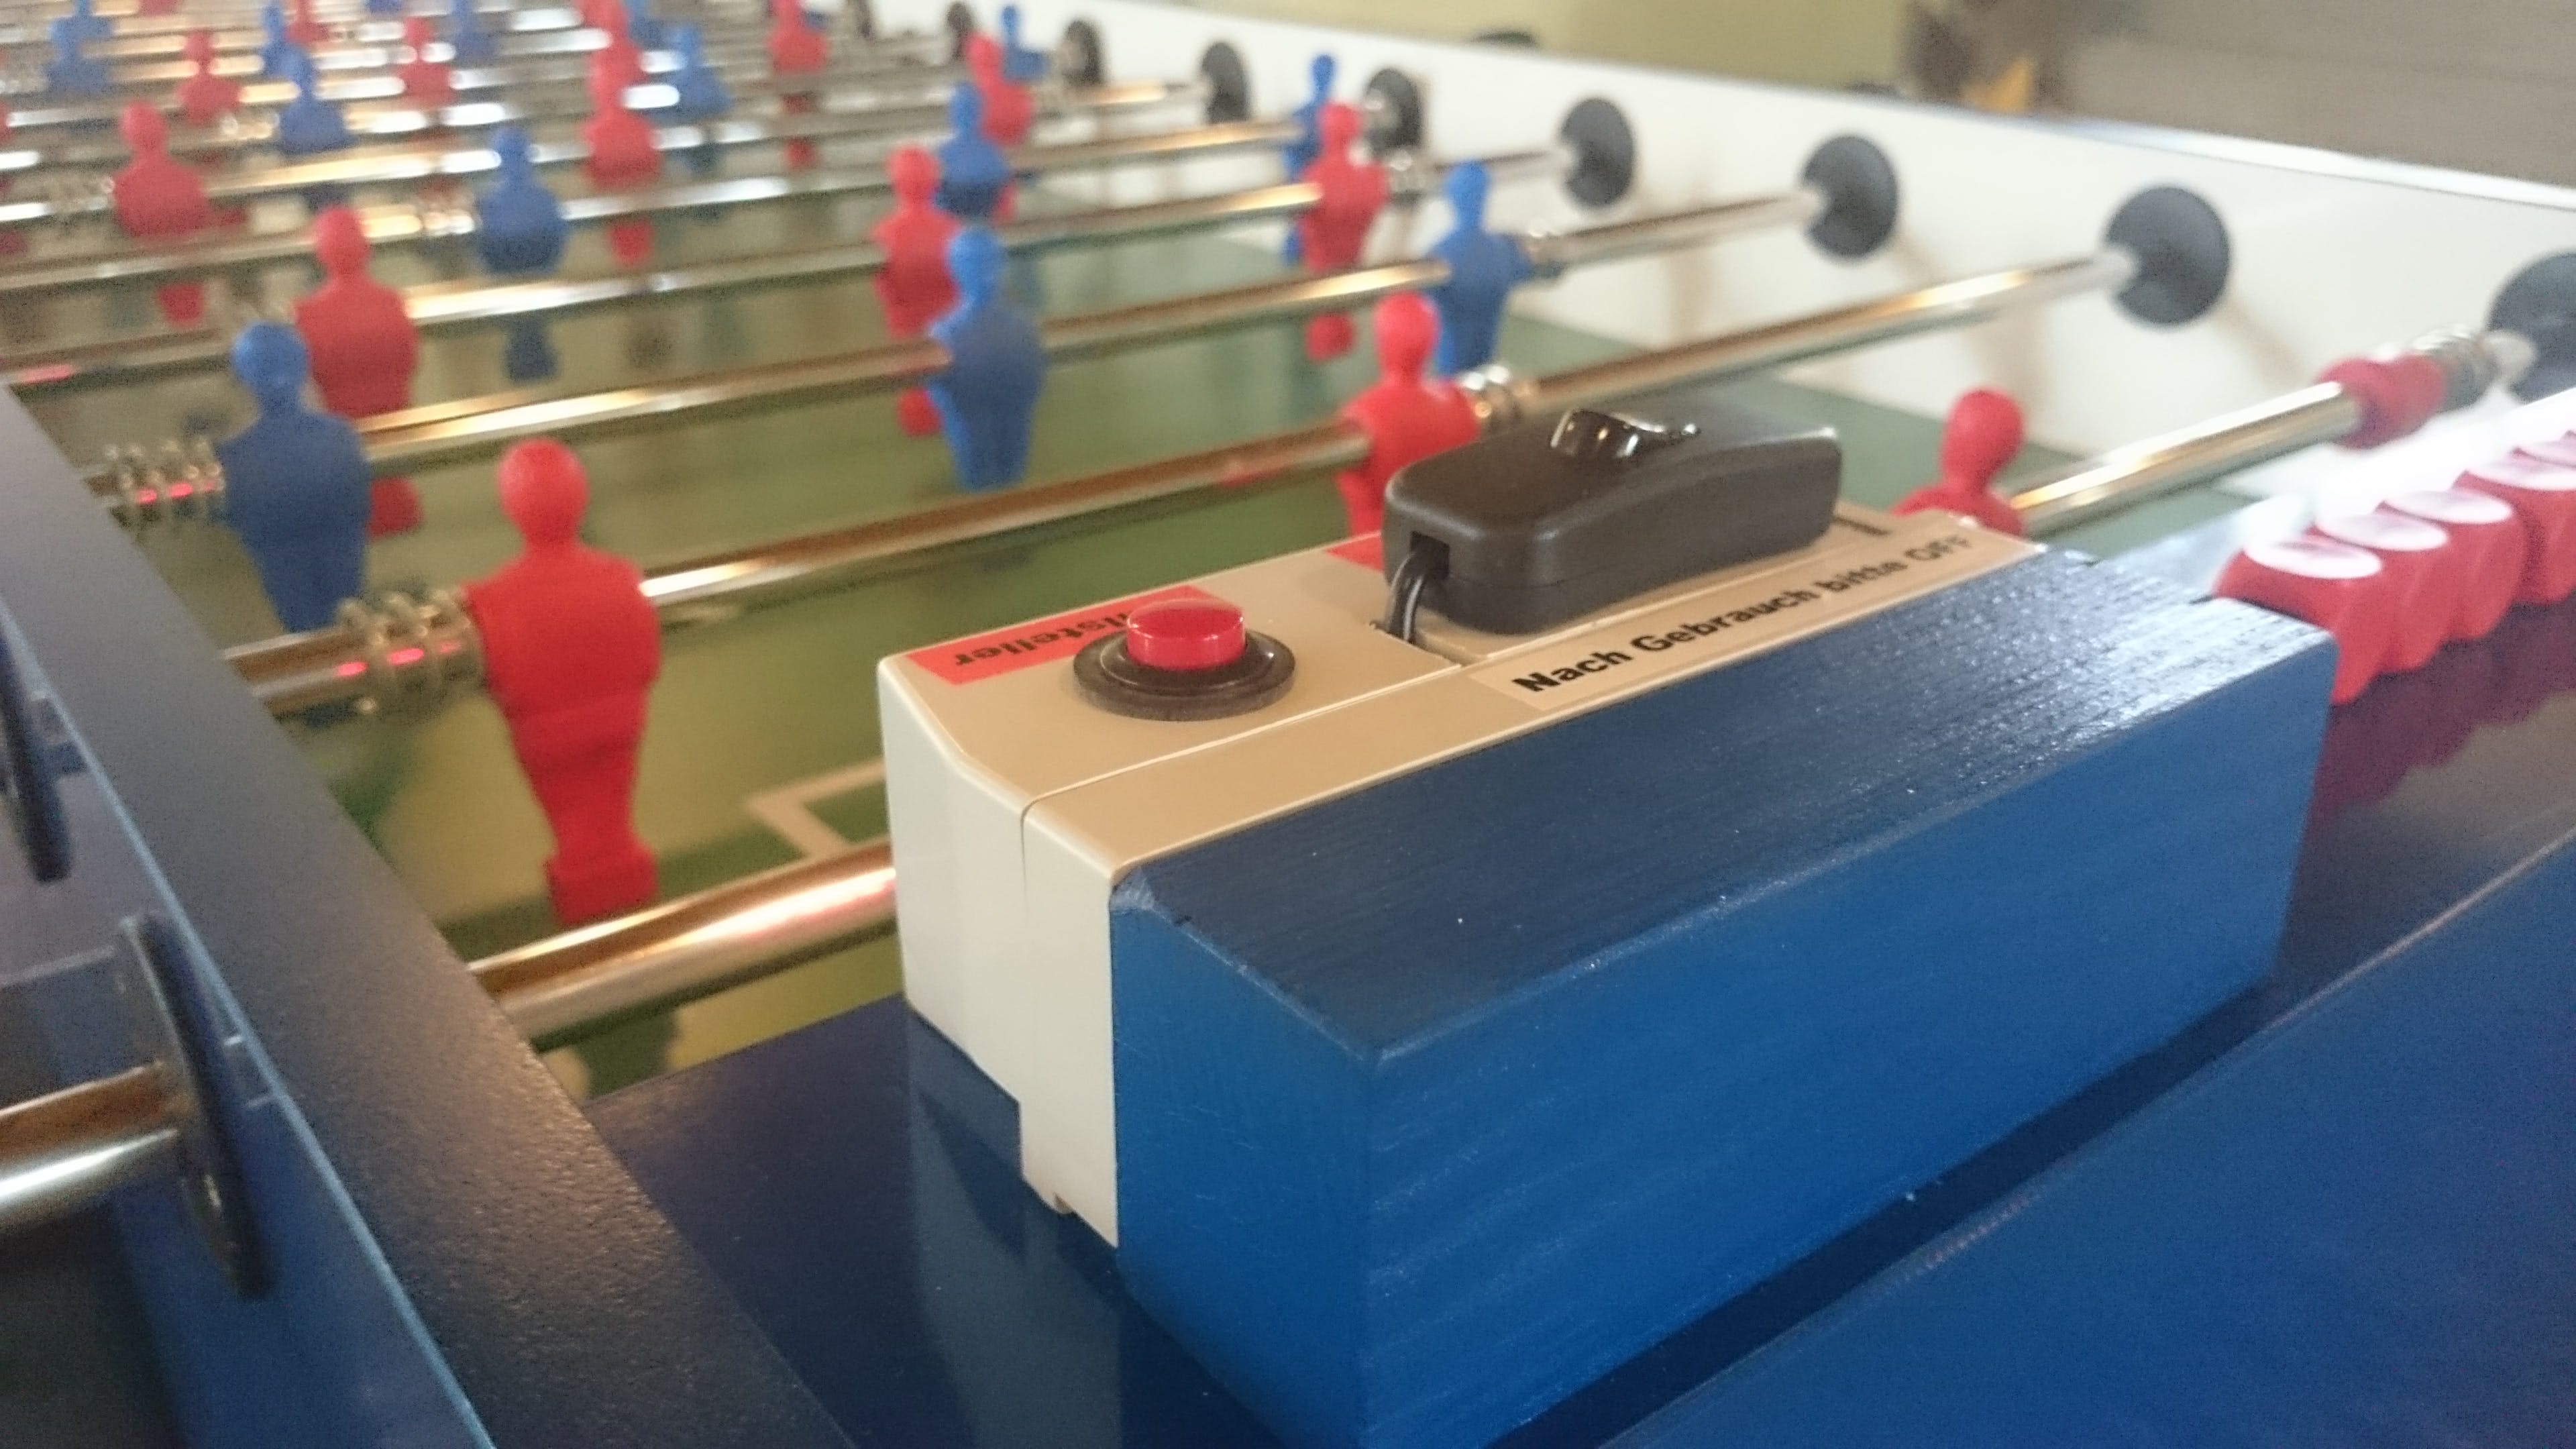 The display housing is mounted on the blue piece of wood, which is screwed onto the table.